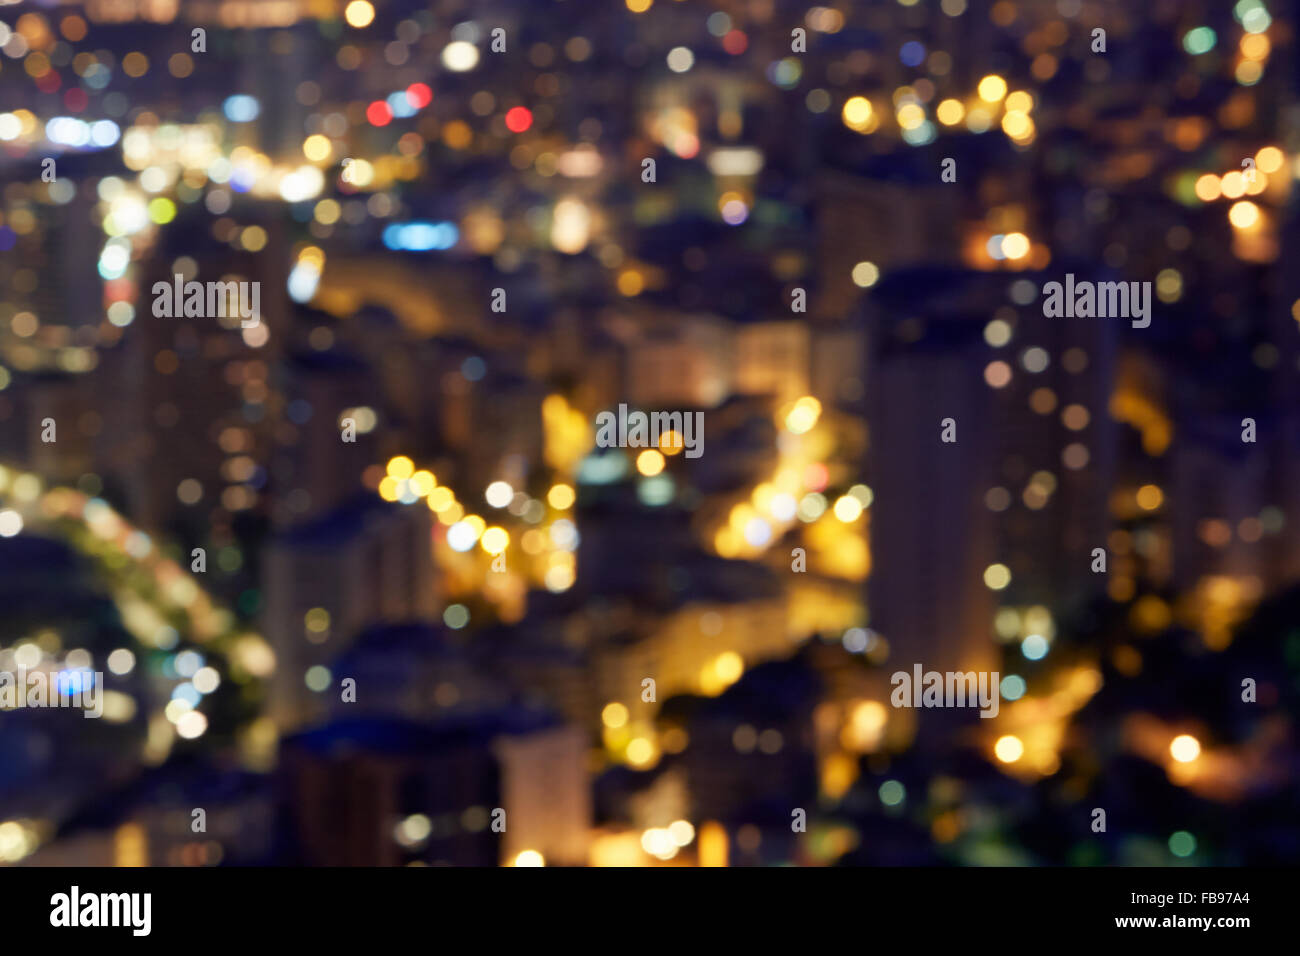 City buildings background at night, unfocused - Stock Image